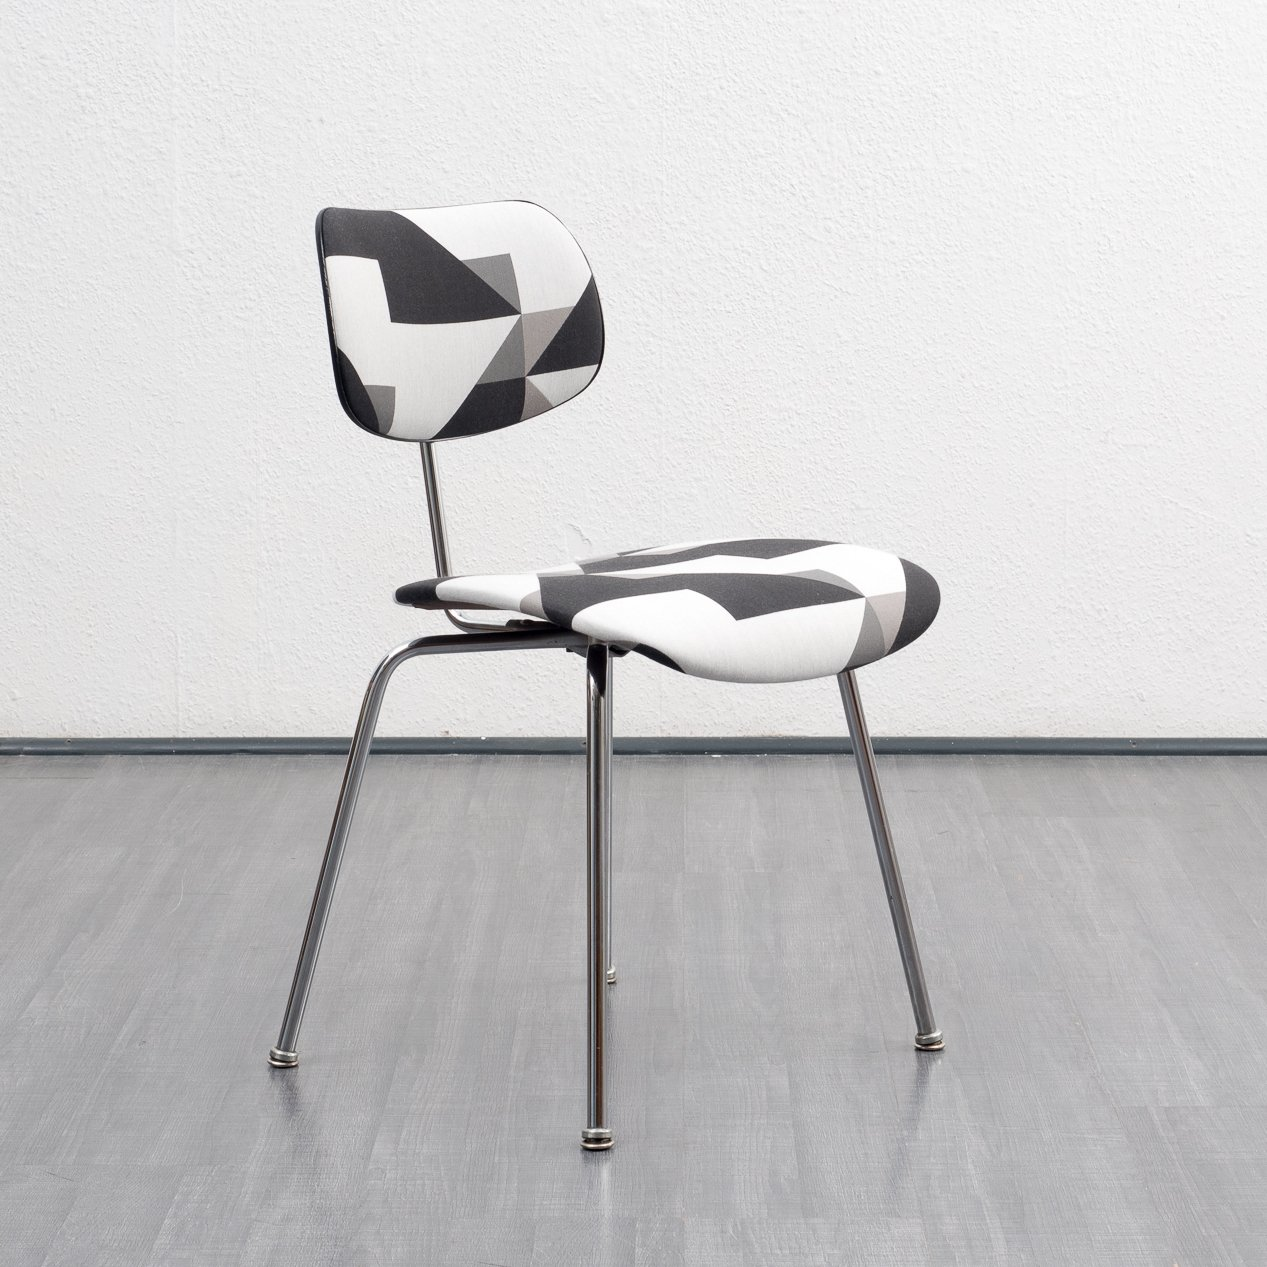 4 dinner chairs from the fifties by egon eiermann for wilde und spieth 64600. Black Bedroom Furniture Sets. Home Design Ideas